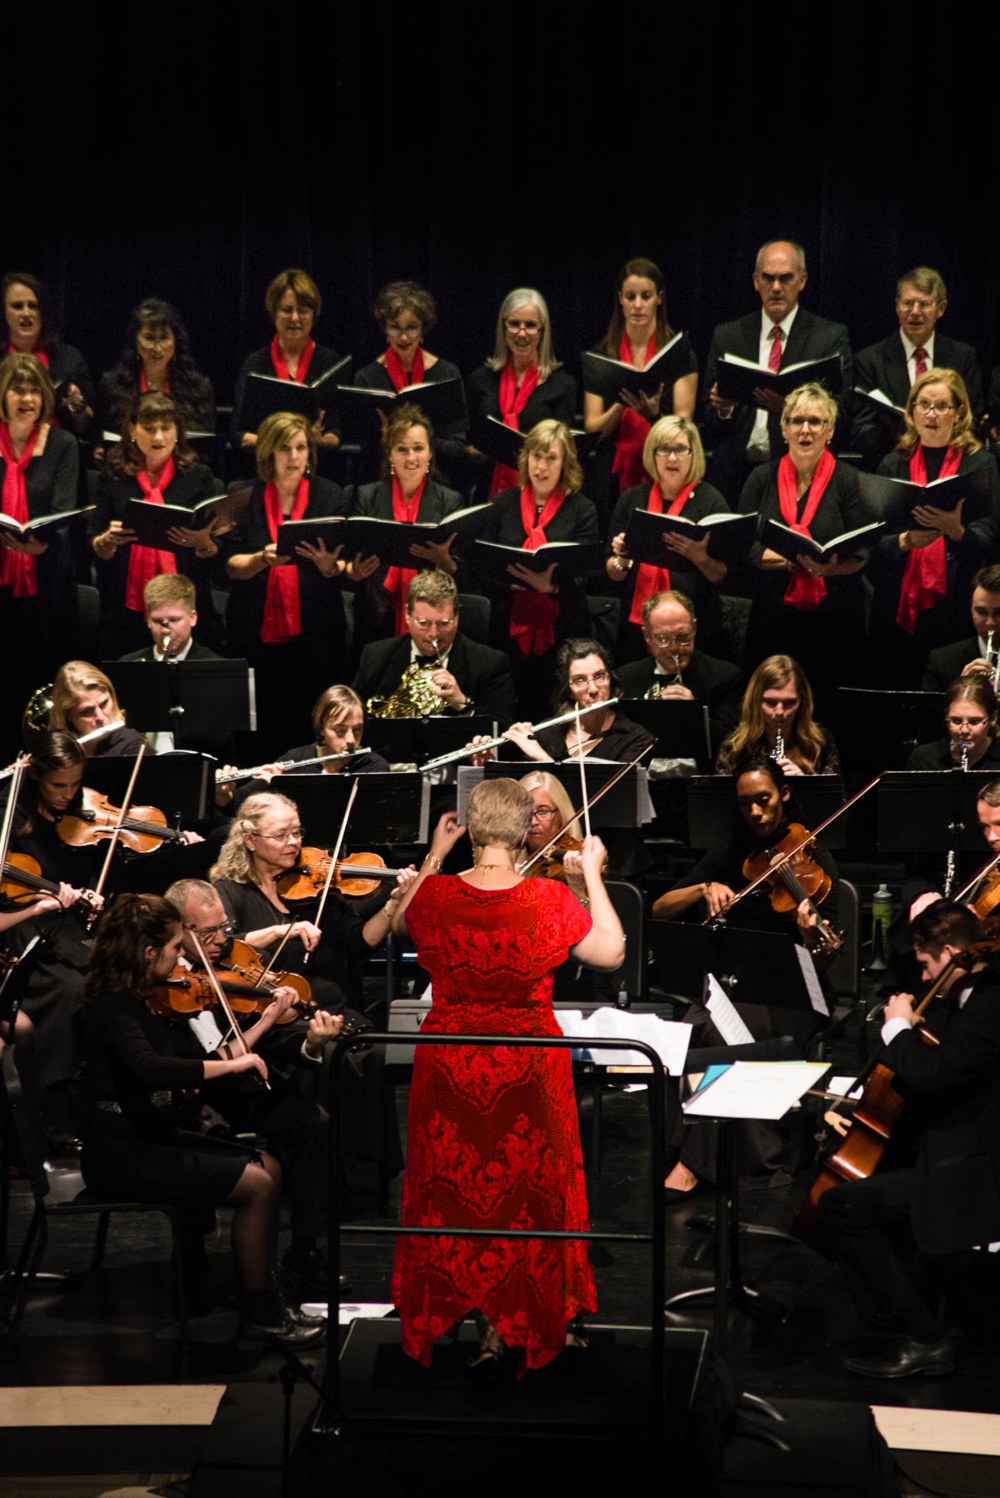 2017-12-08 DPAC Cmas concert (73 of 86) Red Dress v1.png